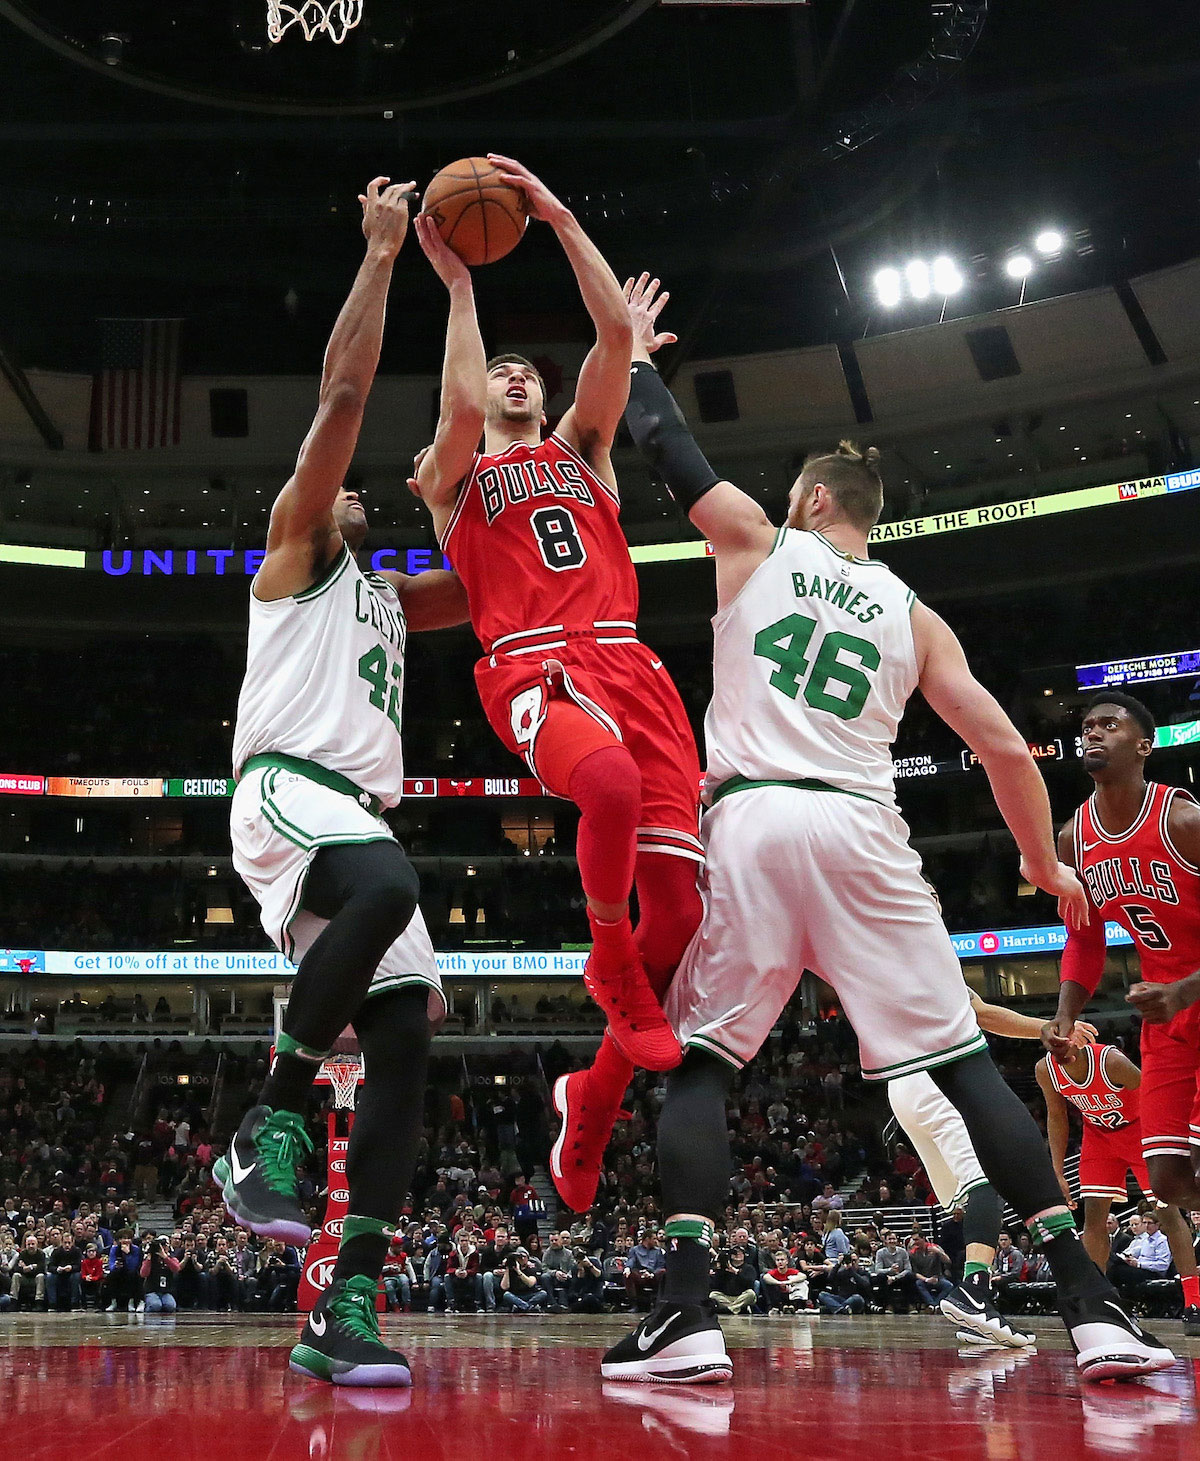 Zach LaVine #8 of the Chicago Bulls goes up for a shot between Al Horford #42 and Aron Baynes #46 of the Boston Celtics